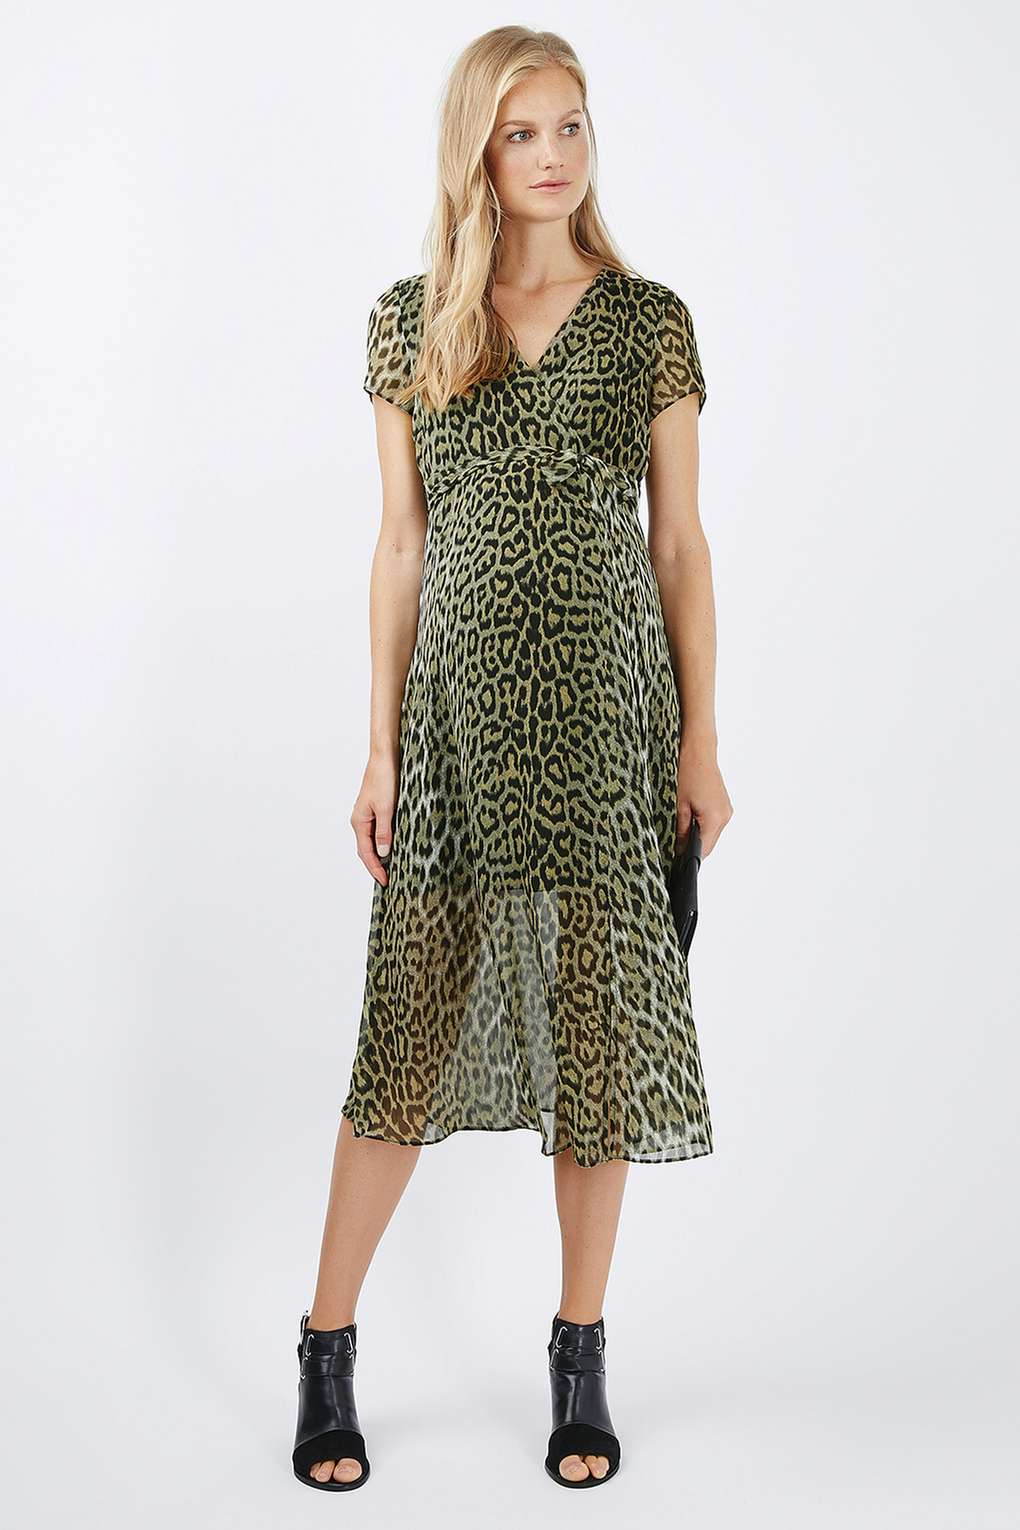 topshop-maternity-dress